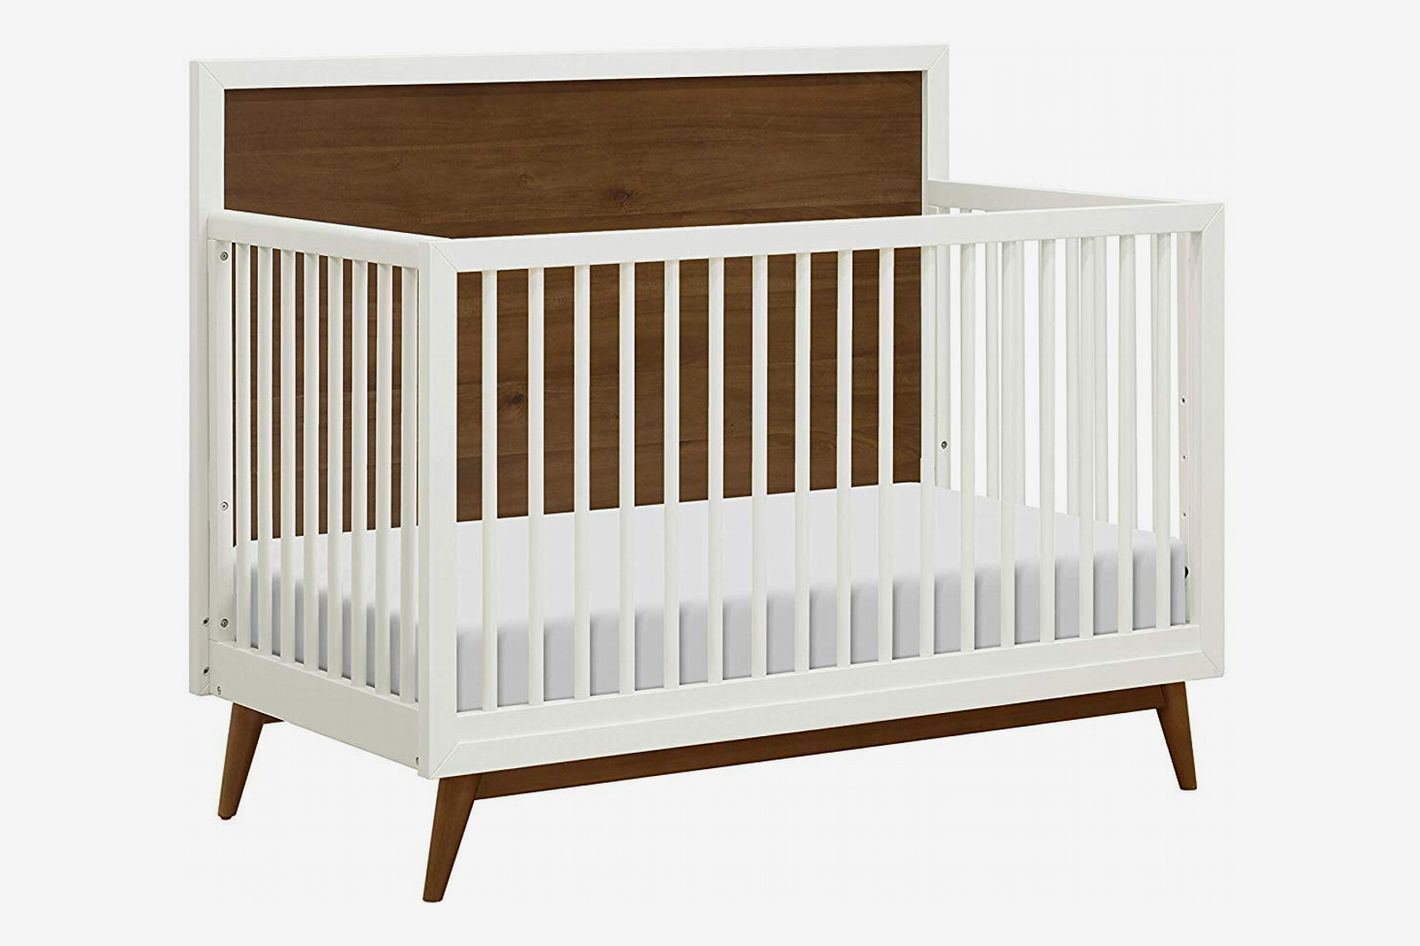 Babyletto Palma 4-in-1 Convertible Crib With Toddler Bed Conversion Kit